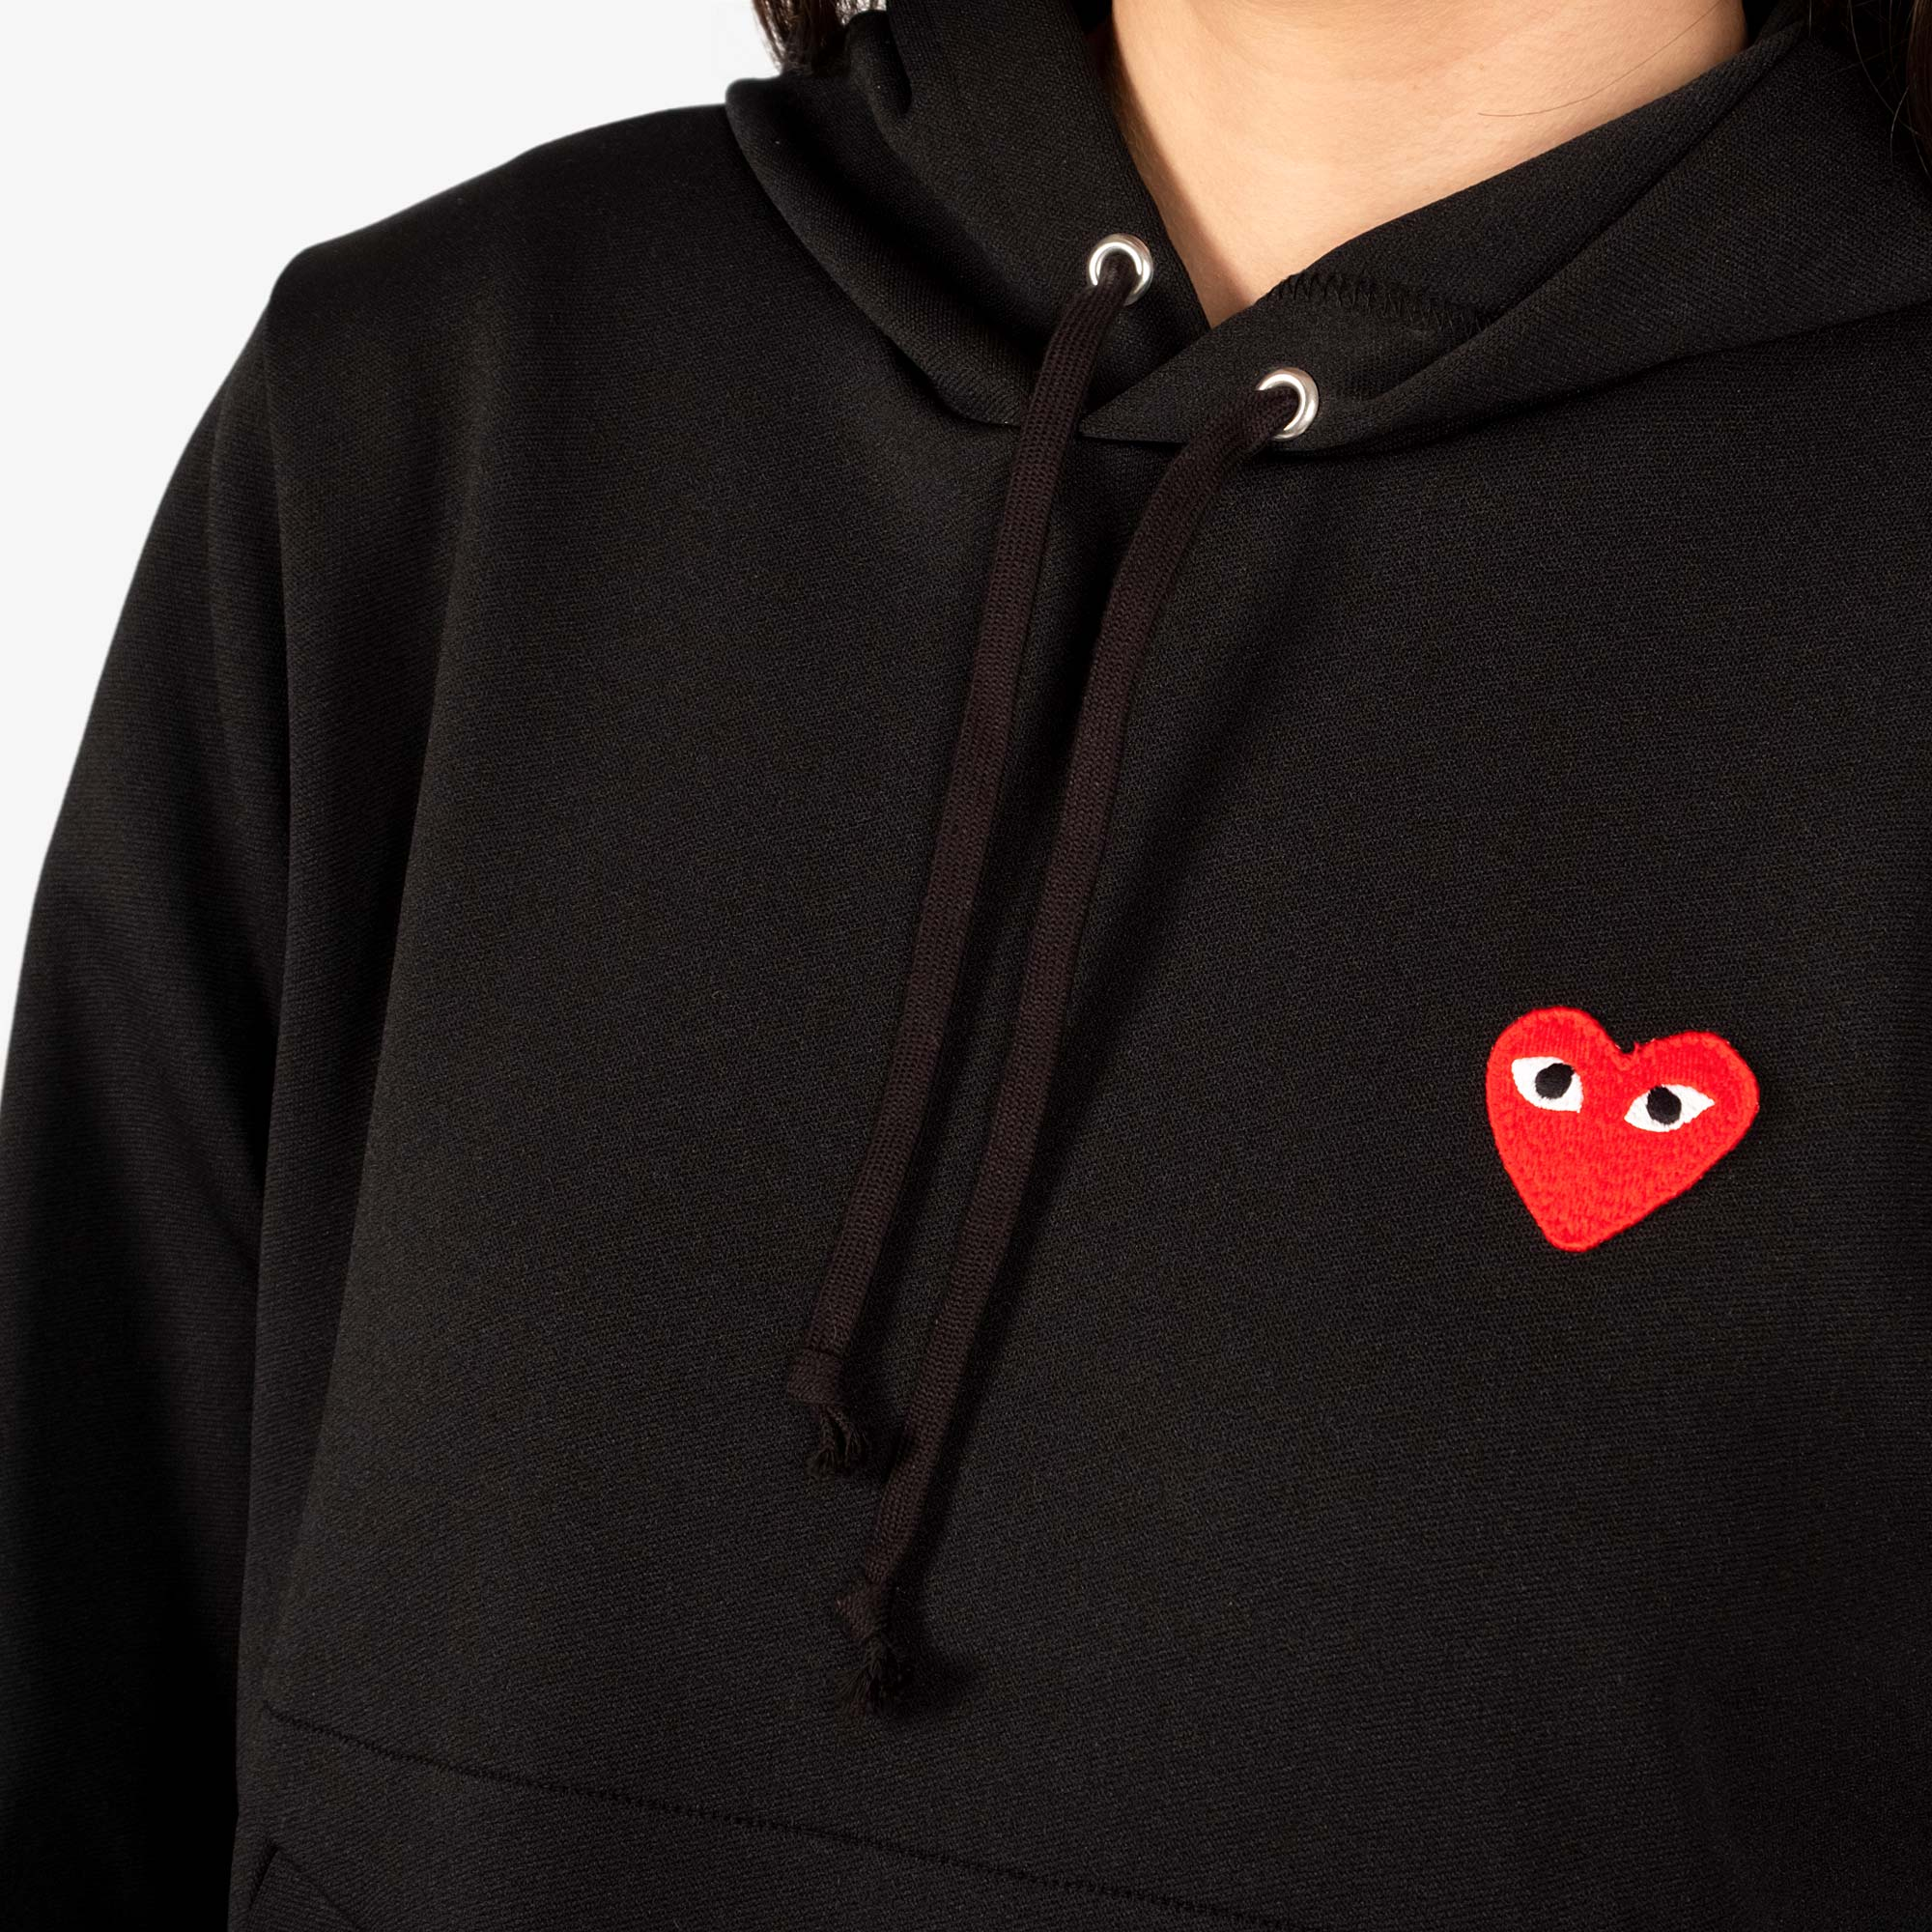 Comme des Garçons - PLAY Red Emblem Womens Hooded Sweater - Black 2